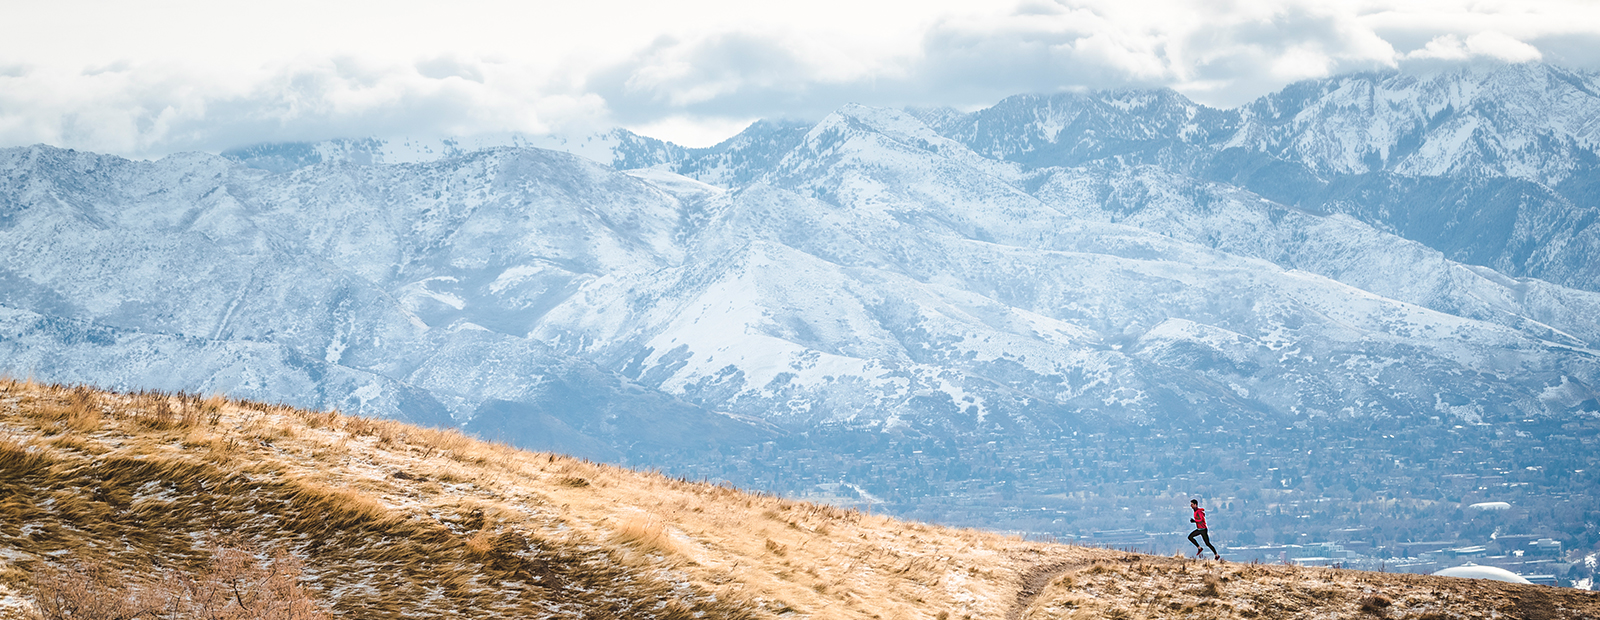 A solitary runner in the mountains.